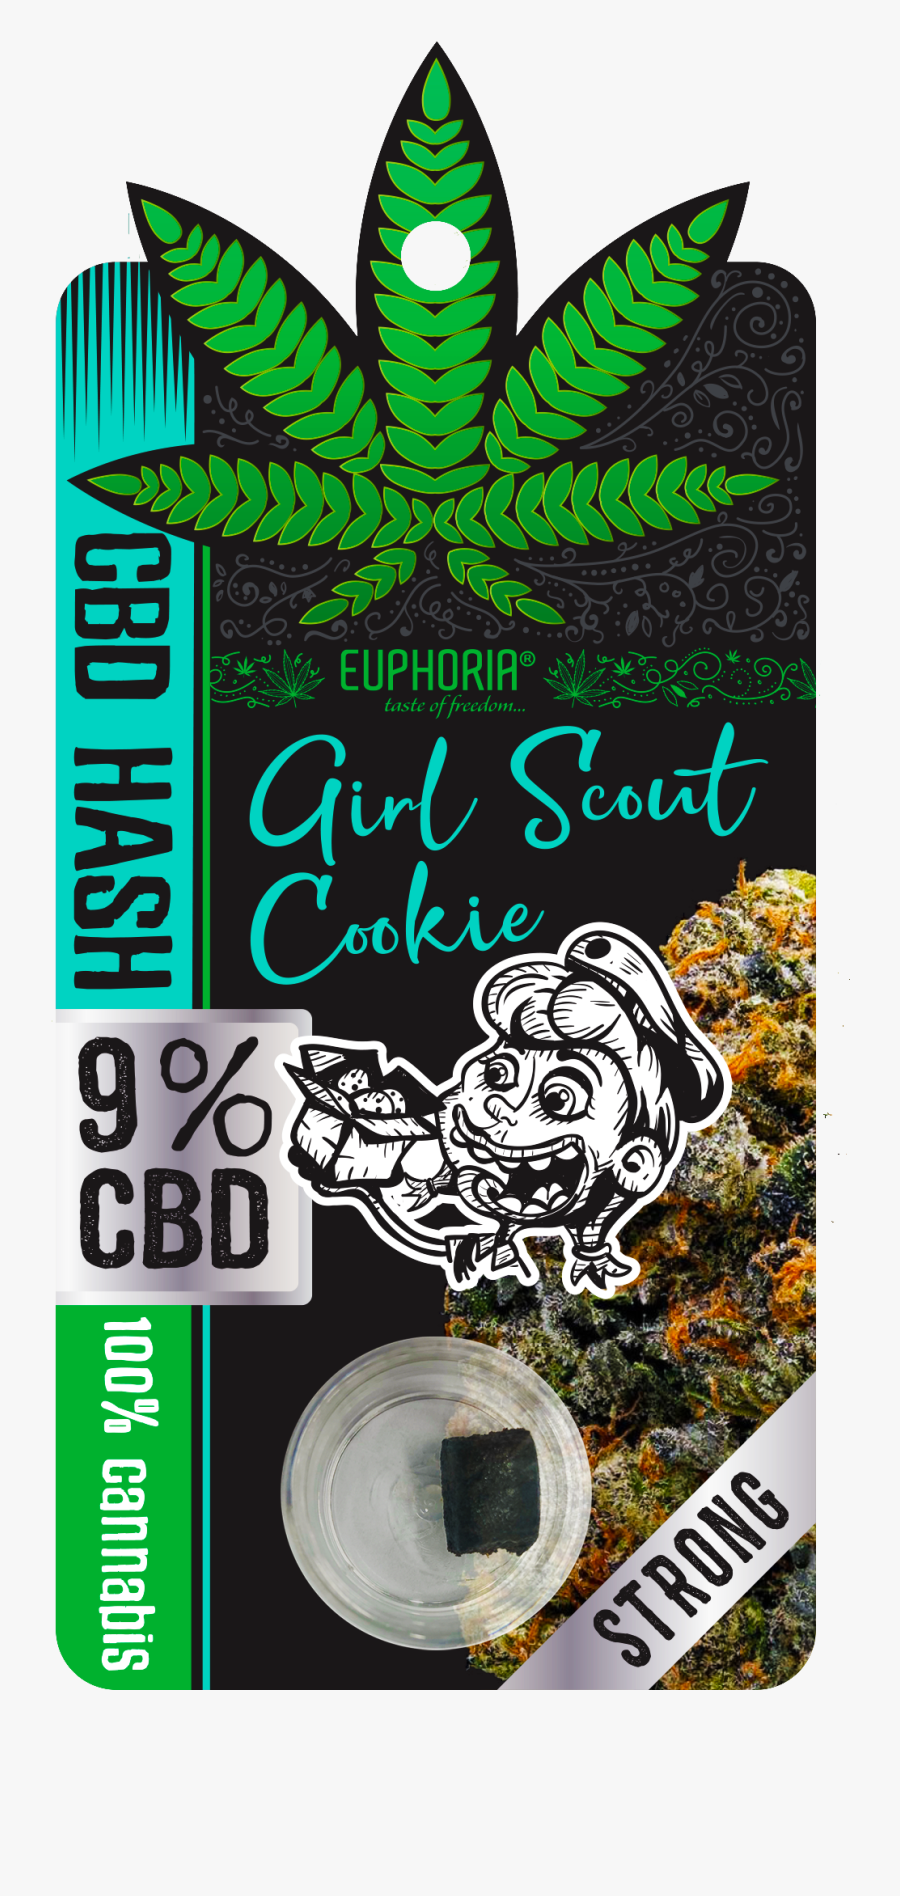 Transparent Girl Scout Cookies Png - Gorilla Glue Hash Cbd, Transparent Clipart